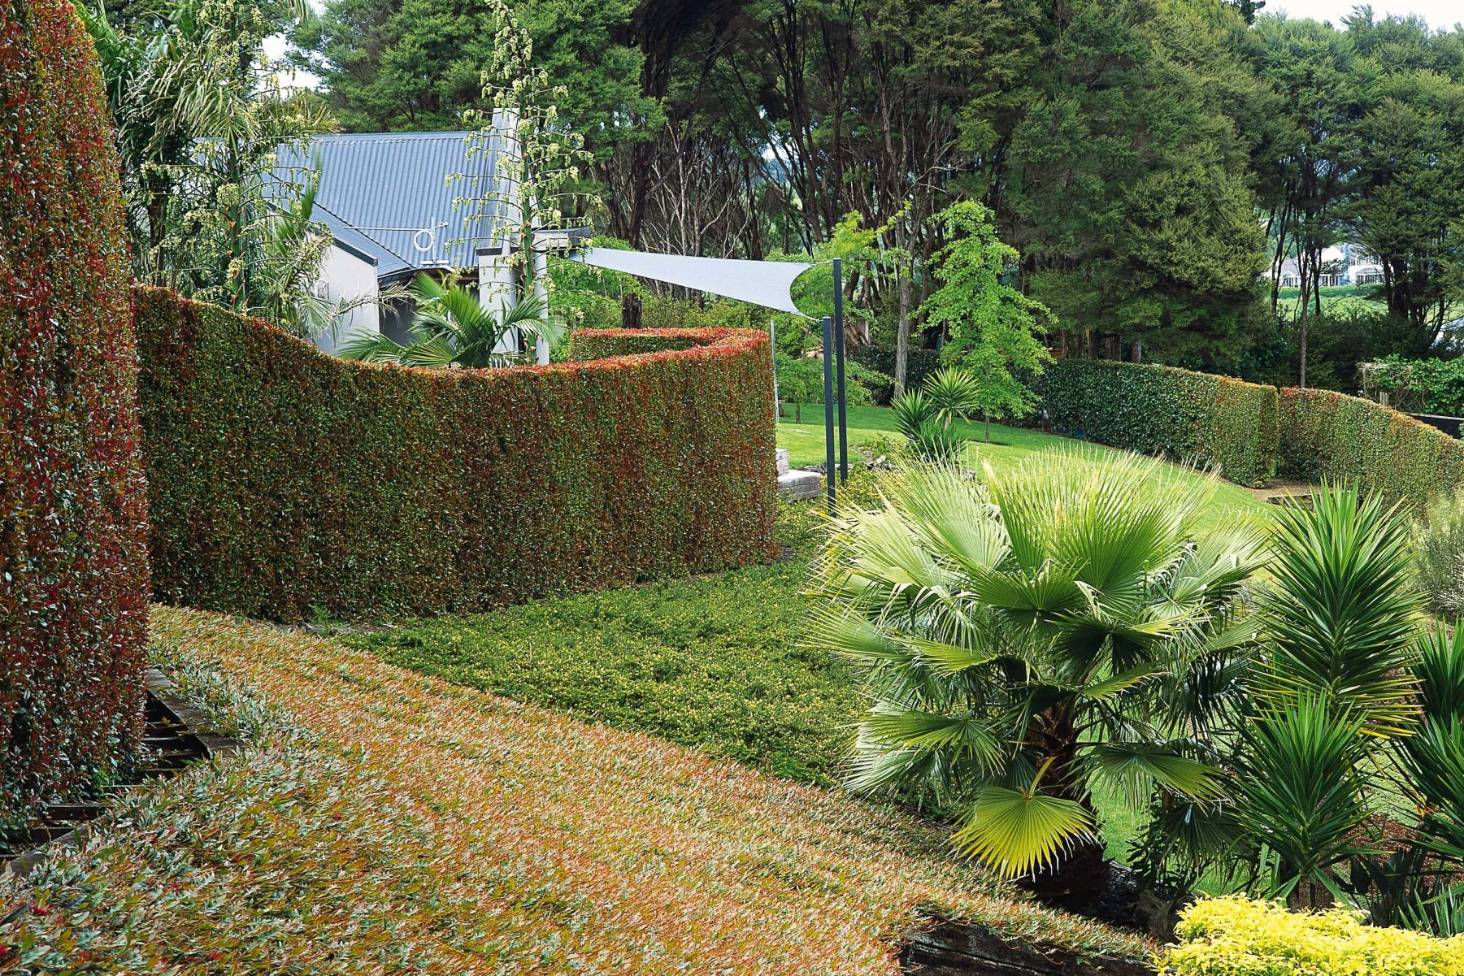 Alpine slide in the garden with your own hands: how to do